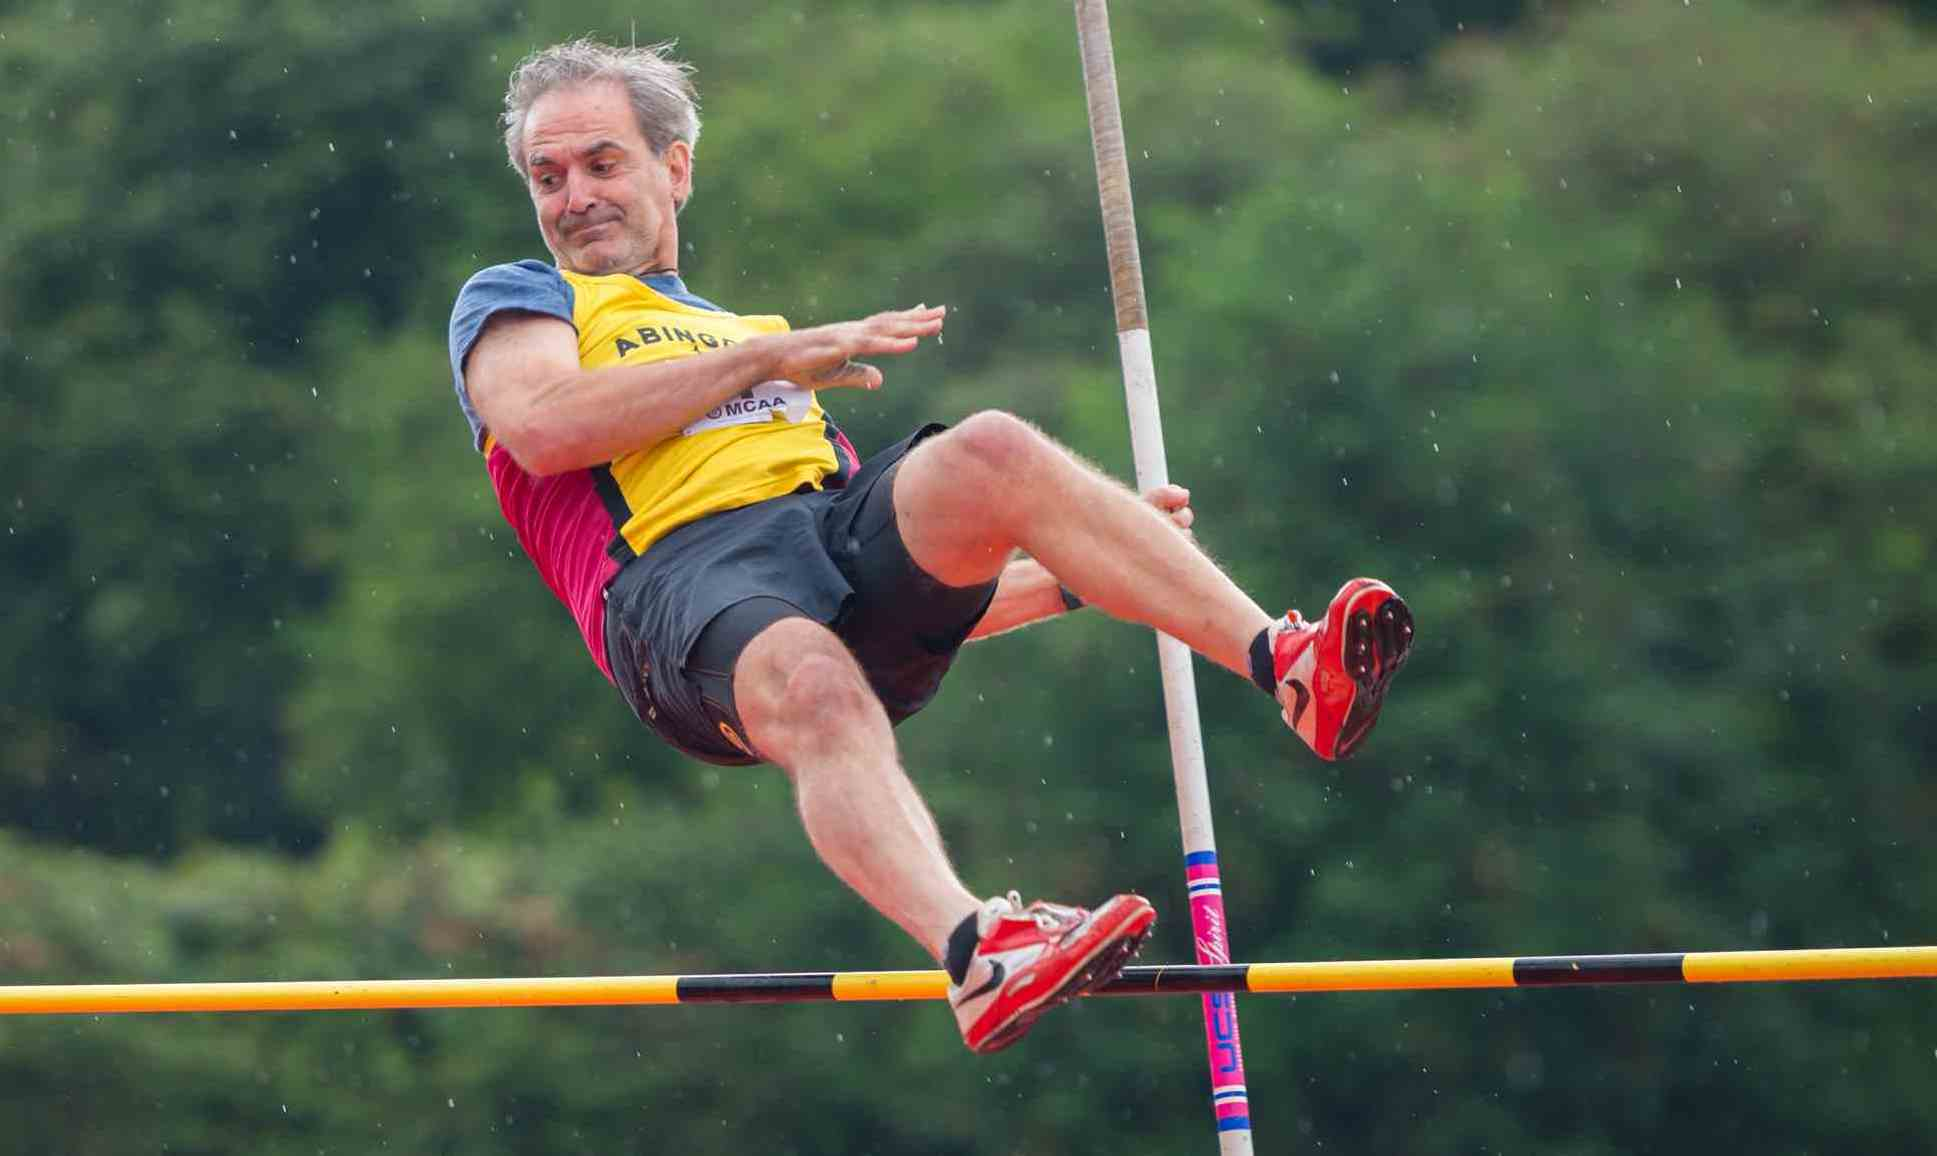 NEW HEIGHTS: Marc Juffkins clears the bar as he finishes third in the pole vault to help Abingdon win the final meet at Sutton Coldfield and clinch promotion to Division 2 of the Midland League Picture: John McNaughton